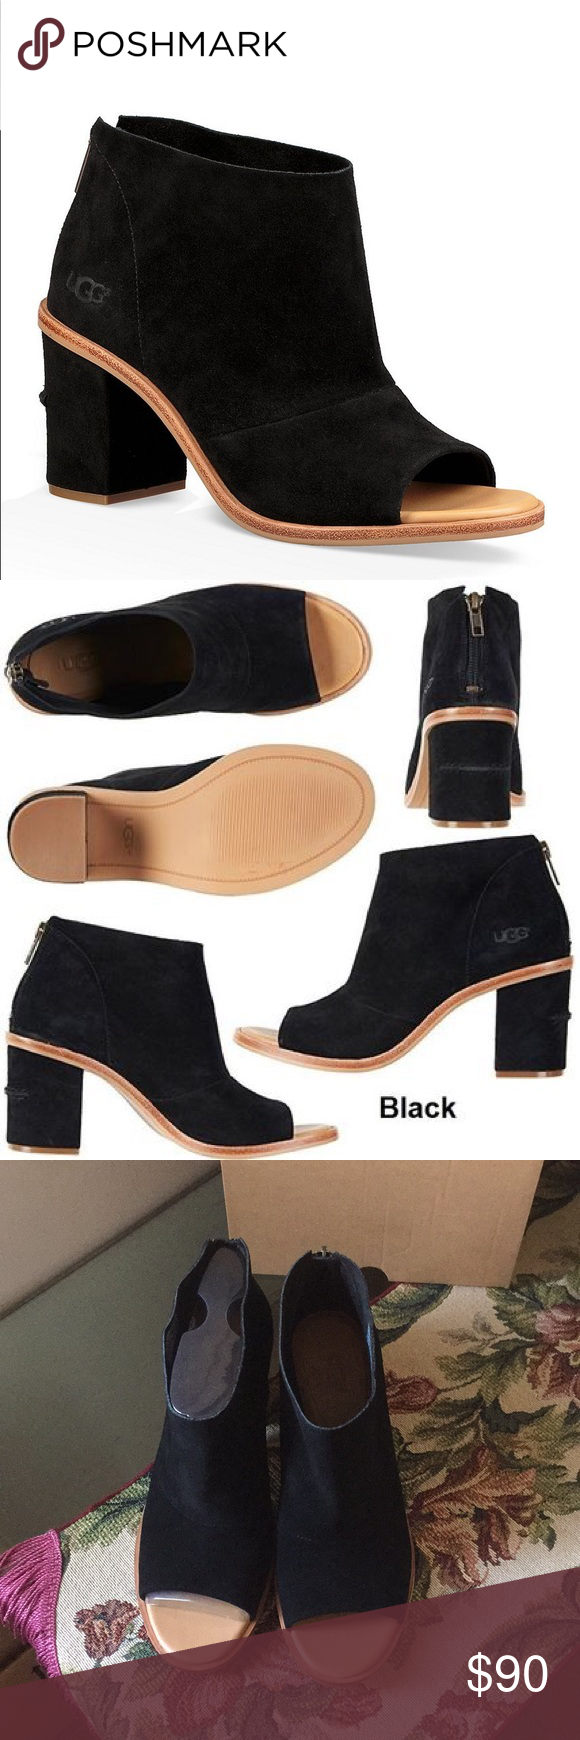 08ec9207305 NEW UGG GINGER BLACK Model: 1019996 This open-toe bootie is crafted ...